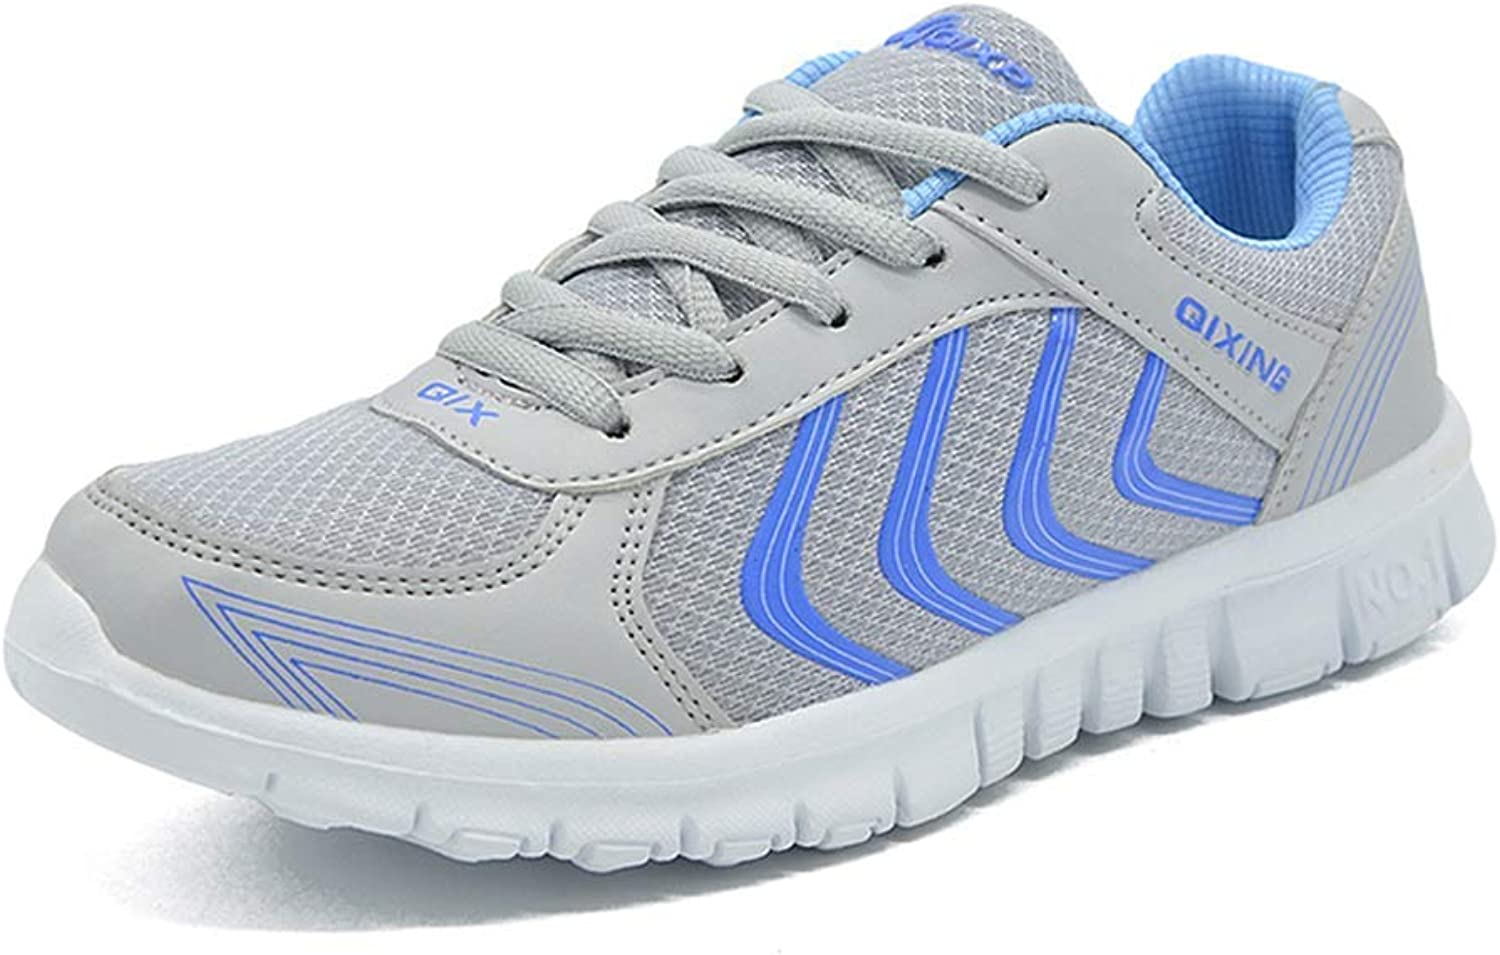 FUDYNMALC Women's Athletic Sneakers Running shoes Casual Sport Walking